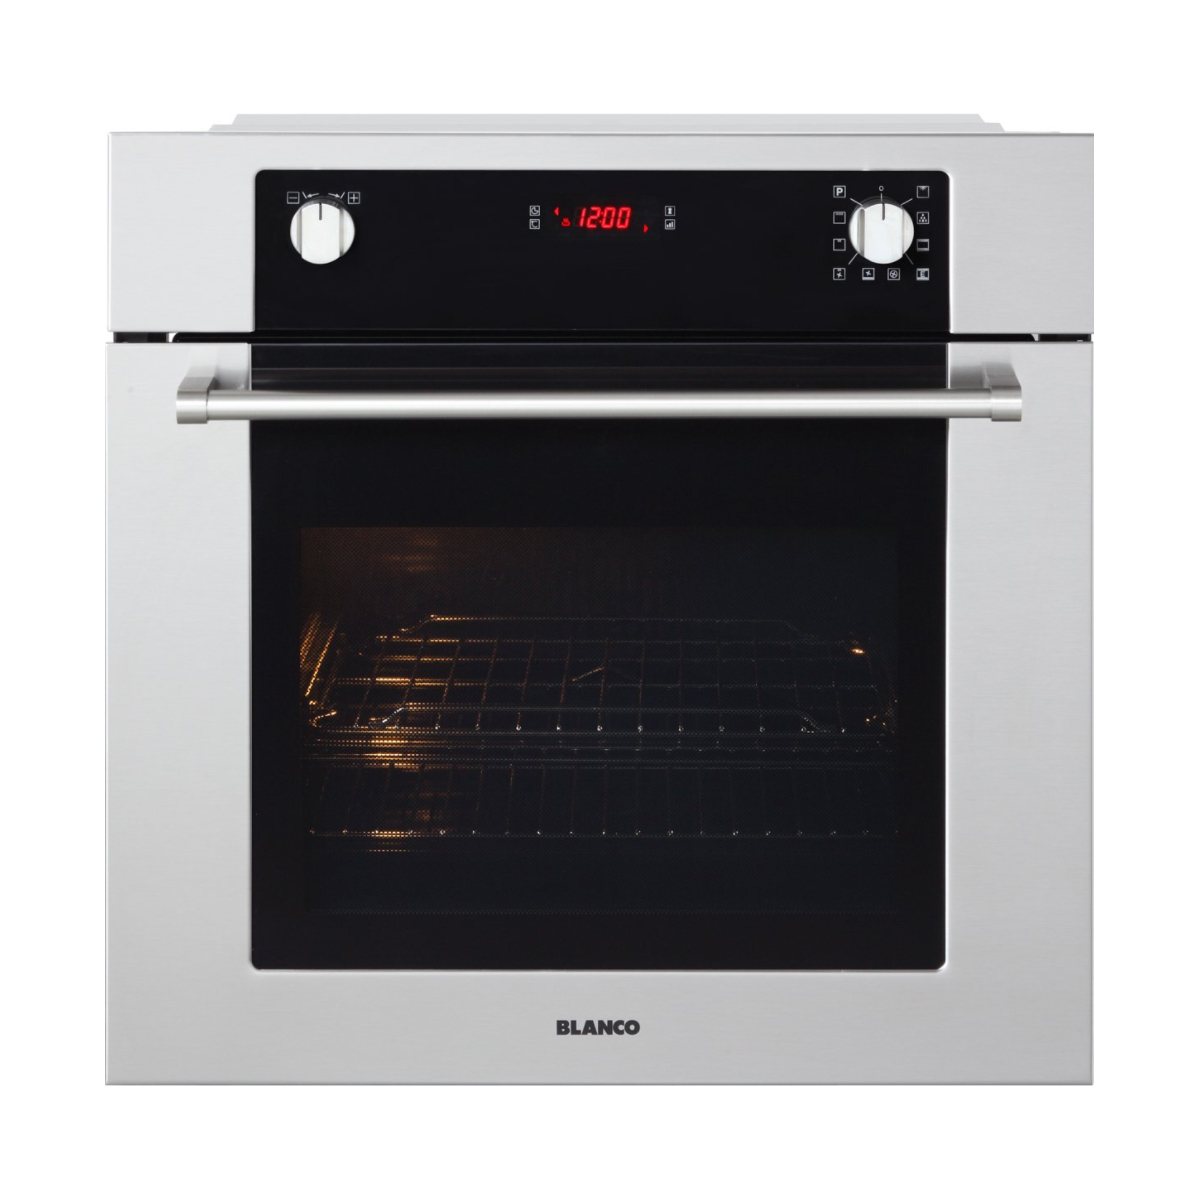 Blanco BOSE61PM 60cm Electric Wall Oven